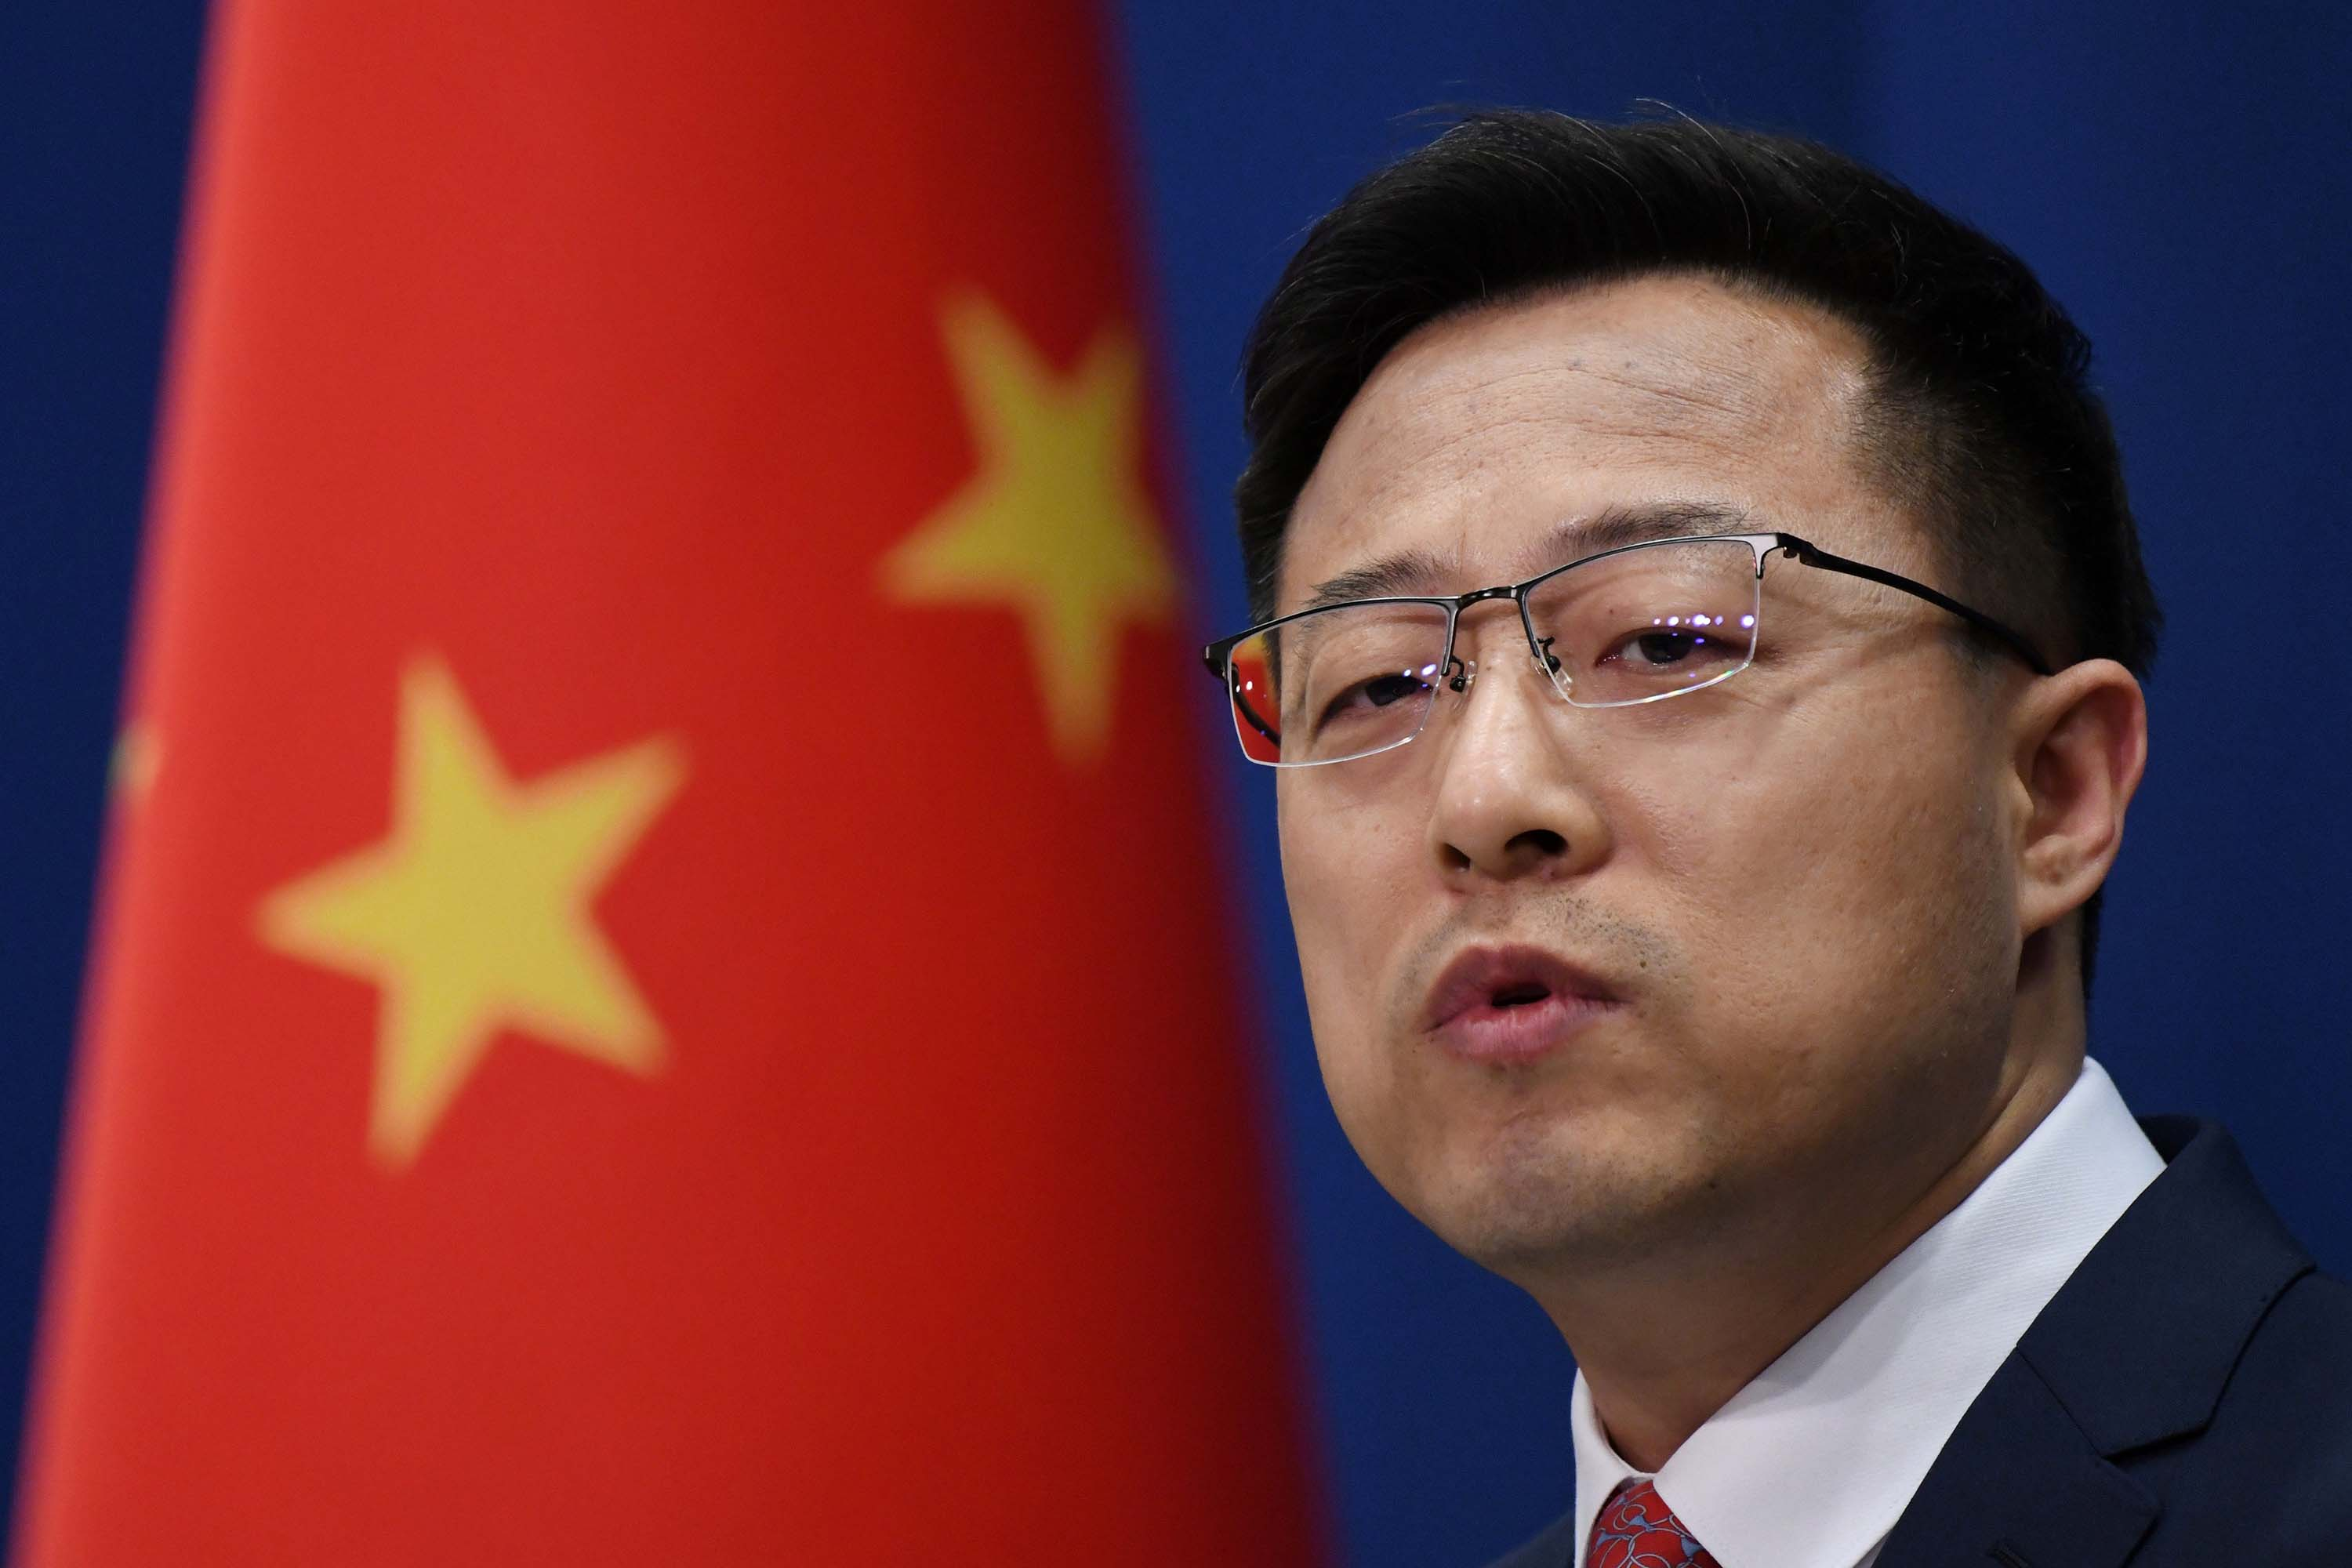 Chinese Foreign Ministry spokesman Zhao Lijian is pictured at a media briefing in Beijing in April.